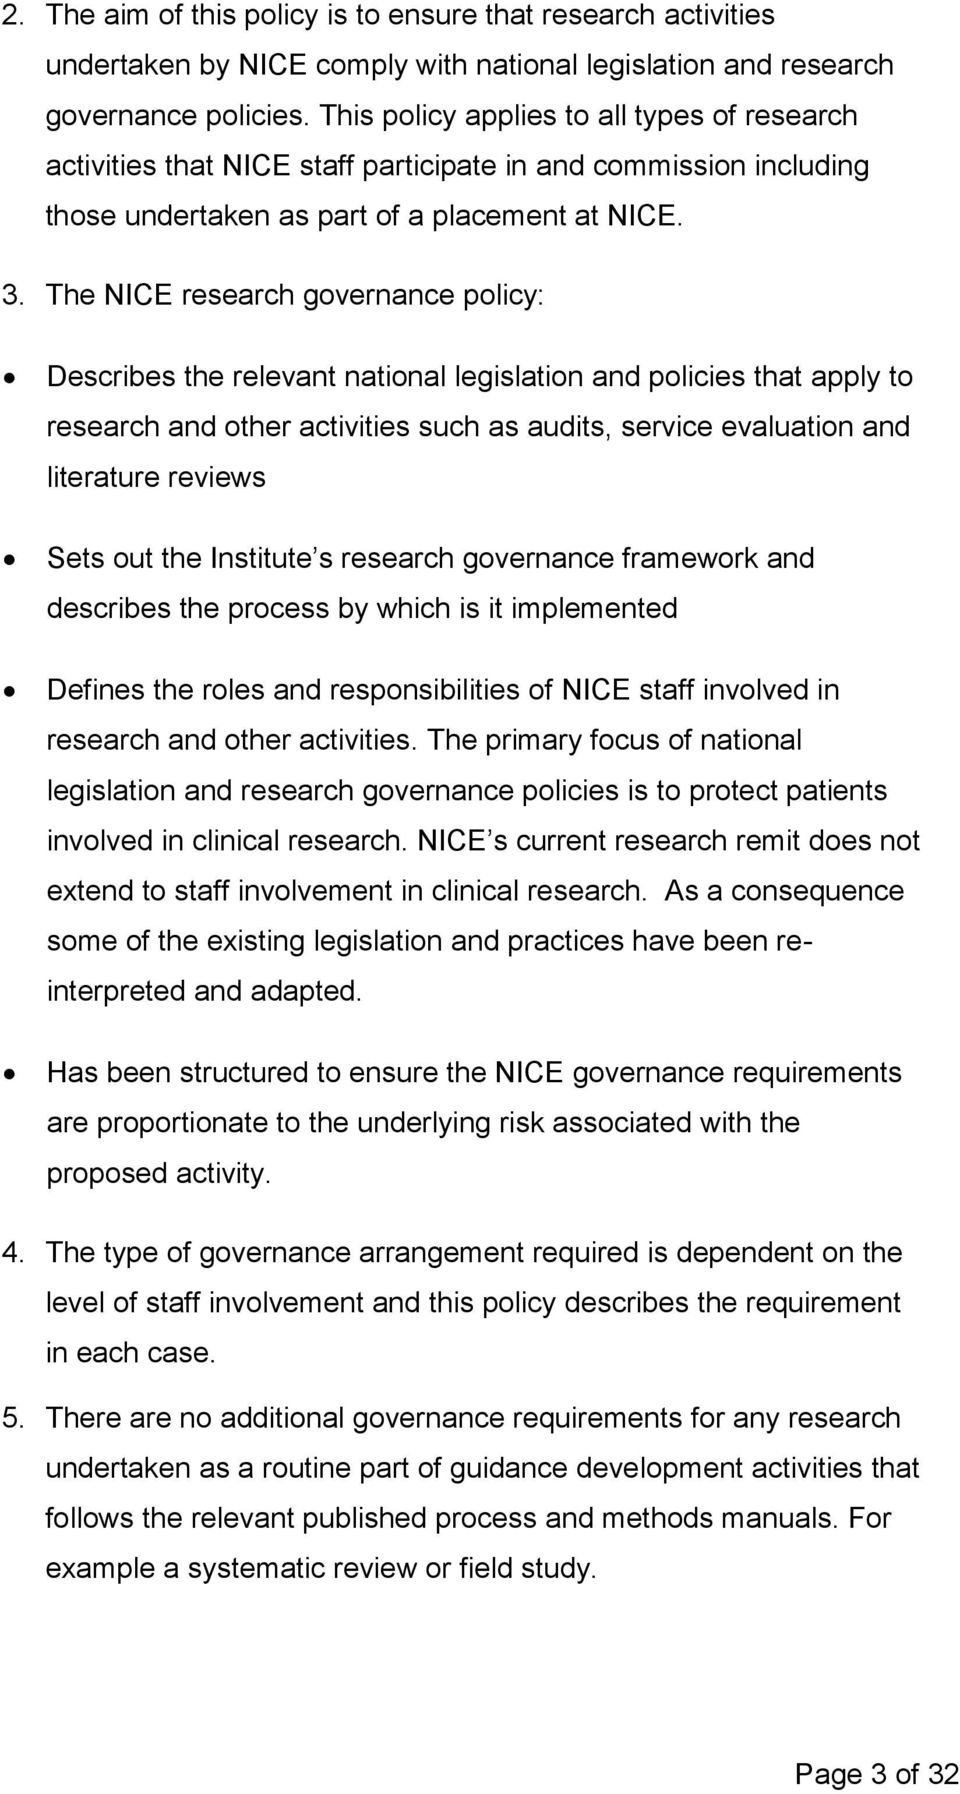 The NICE research governance policy: Describes the relevant national legislation and policies that apply to research and other activities such as audits, service evaluation and literature reviews